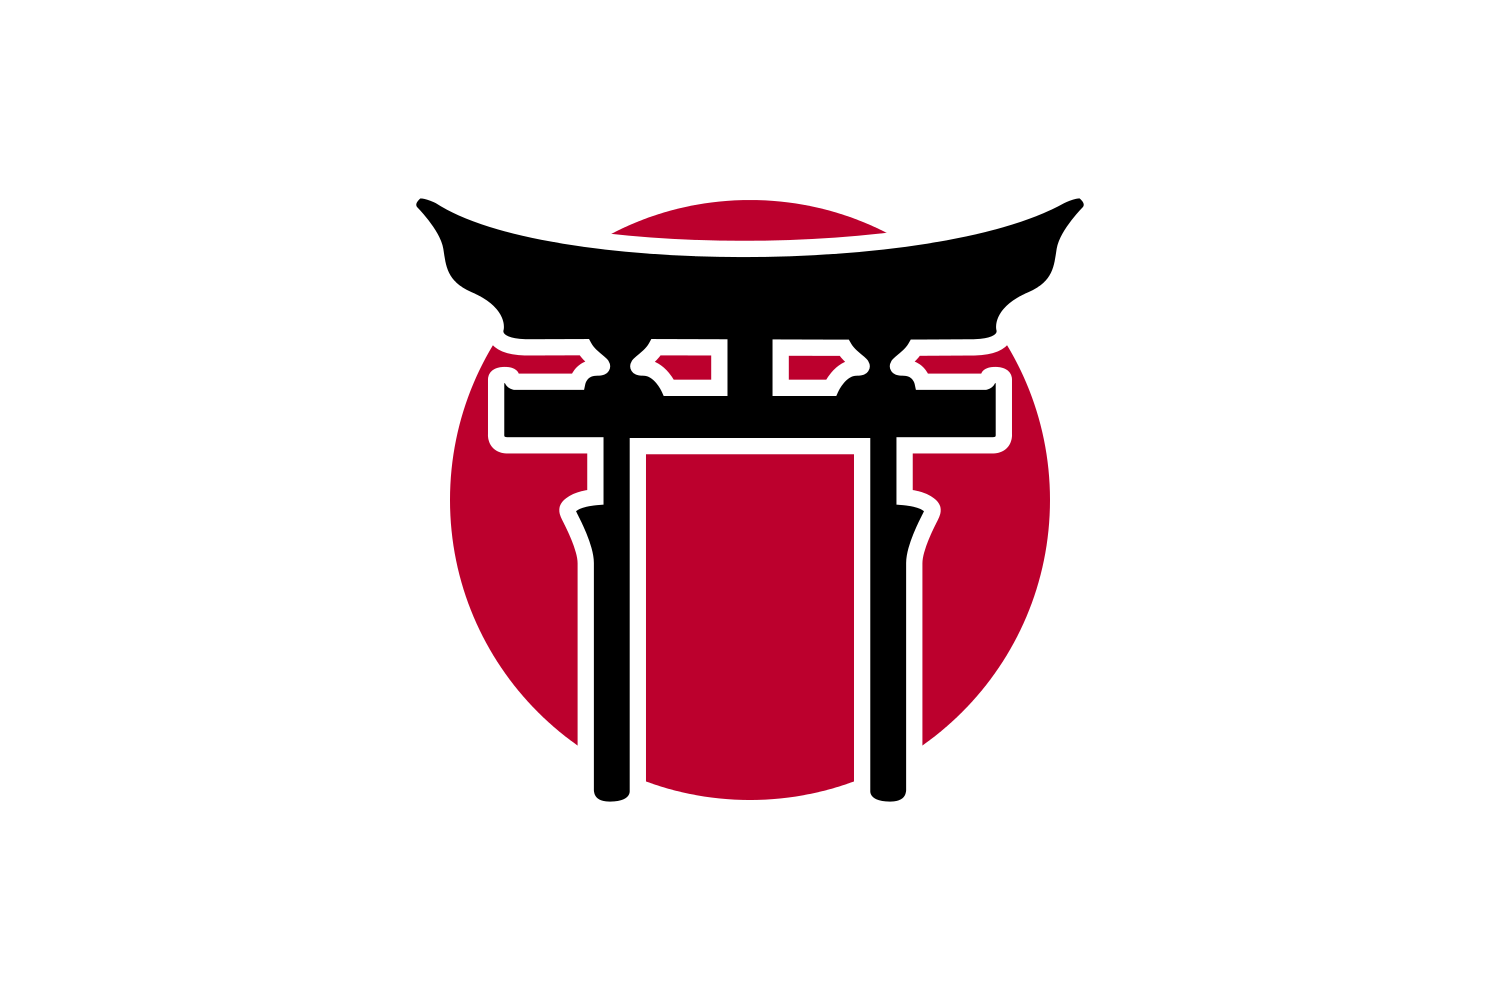 Shinto Flag - MetroFlags.com - The Largest Online Provider ...